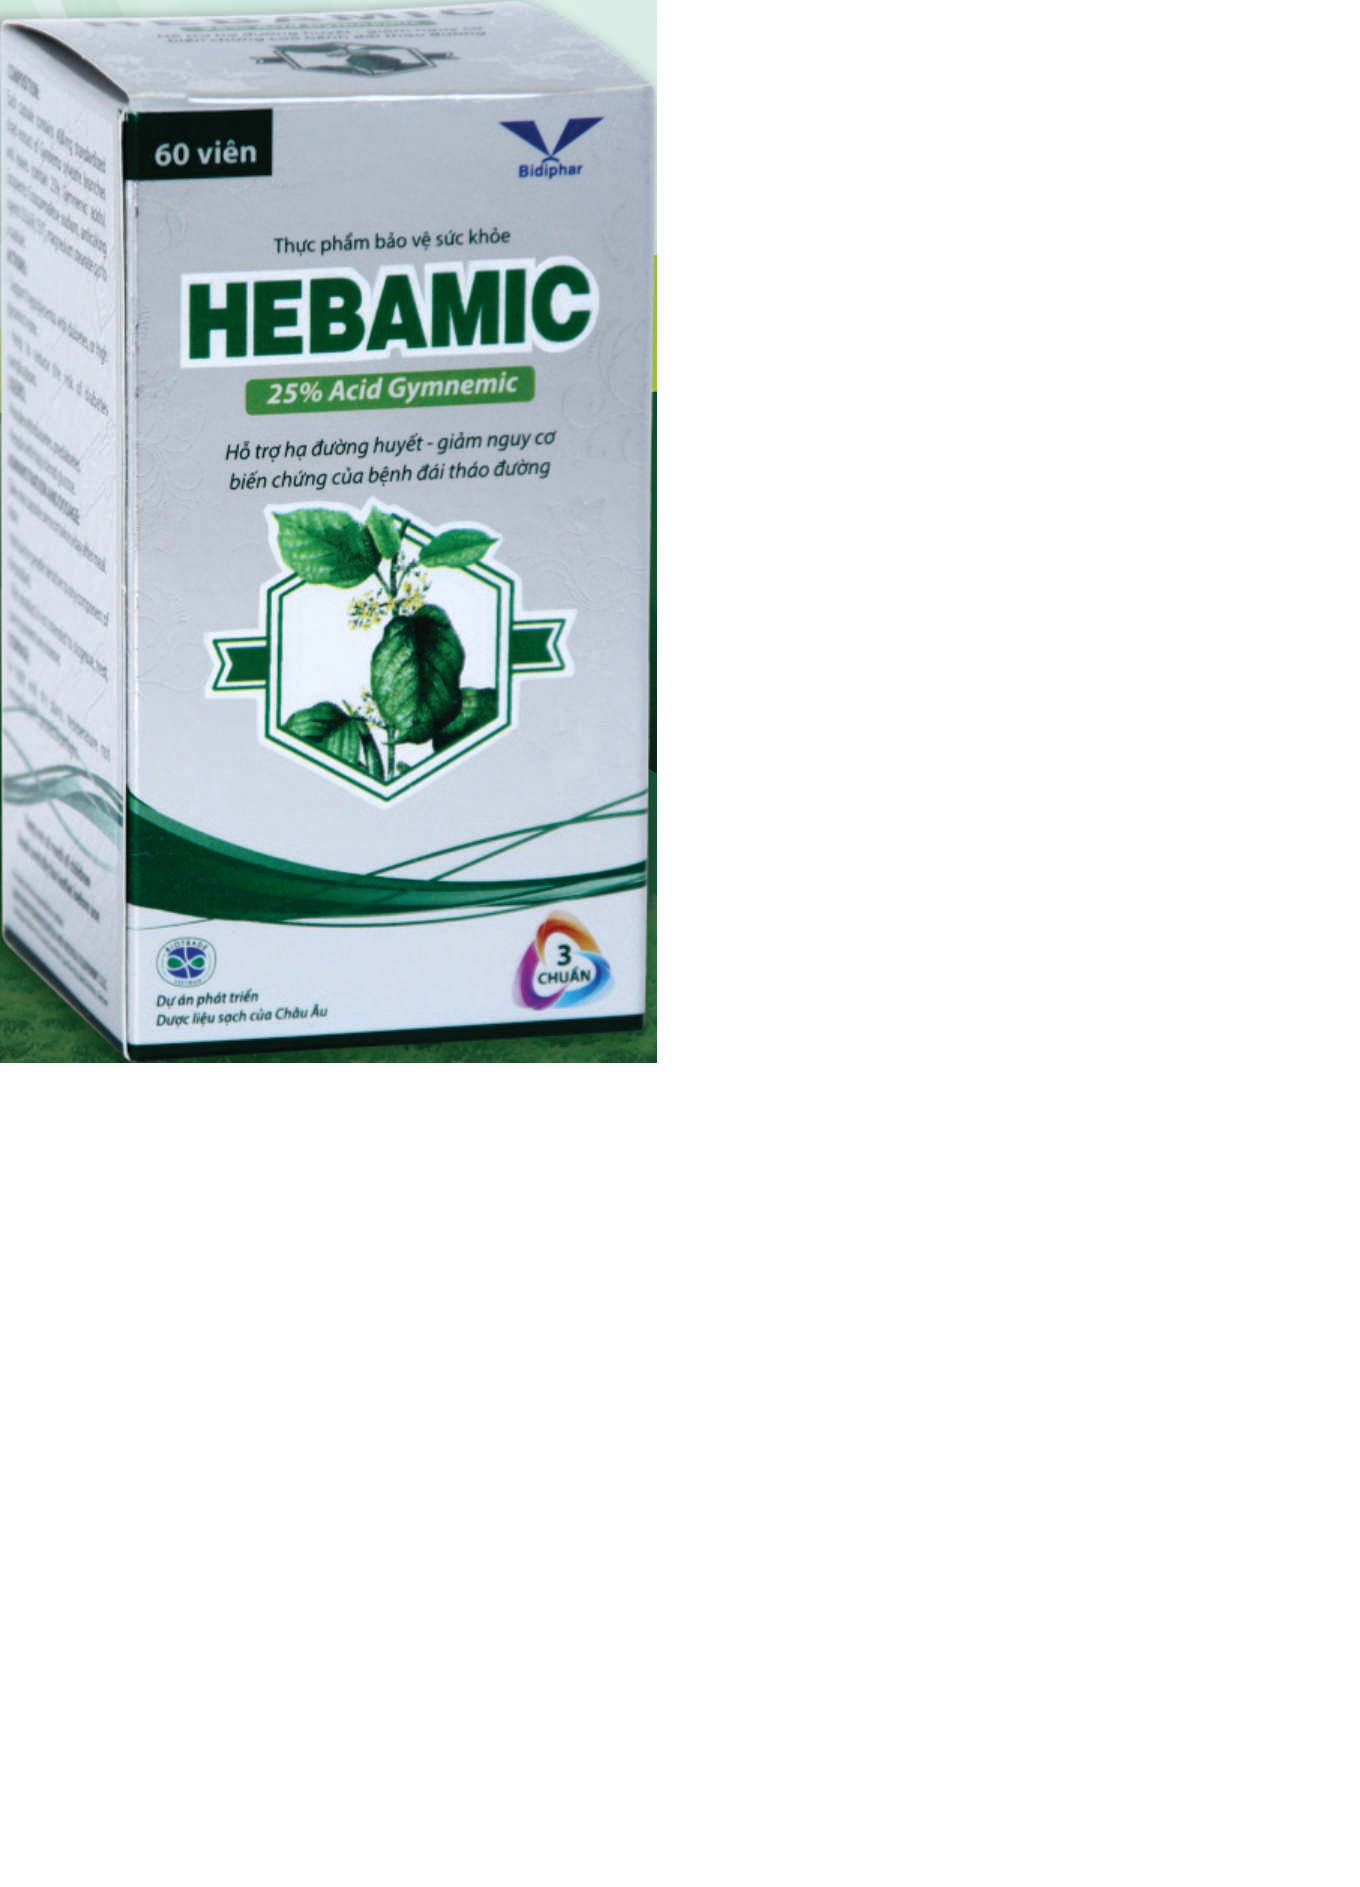 HEBAMIC